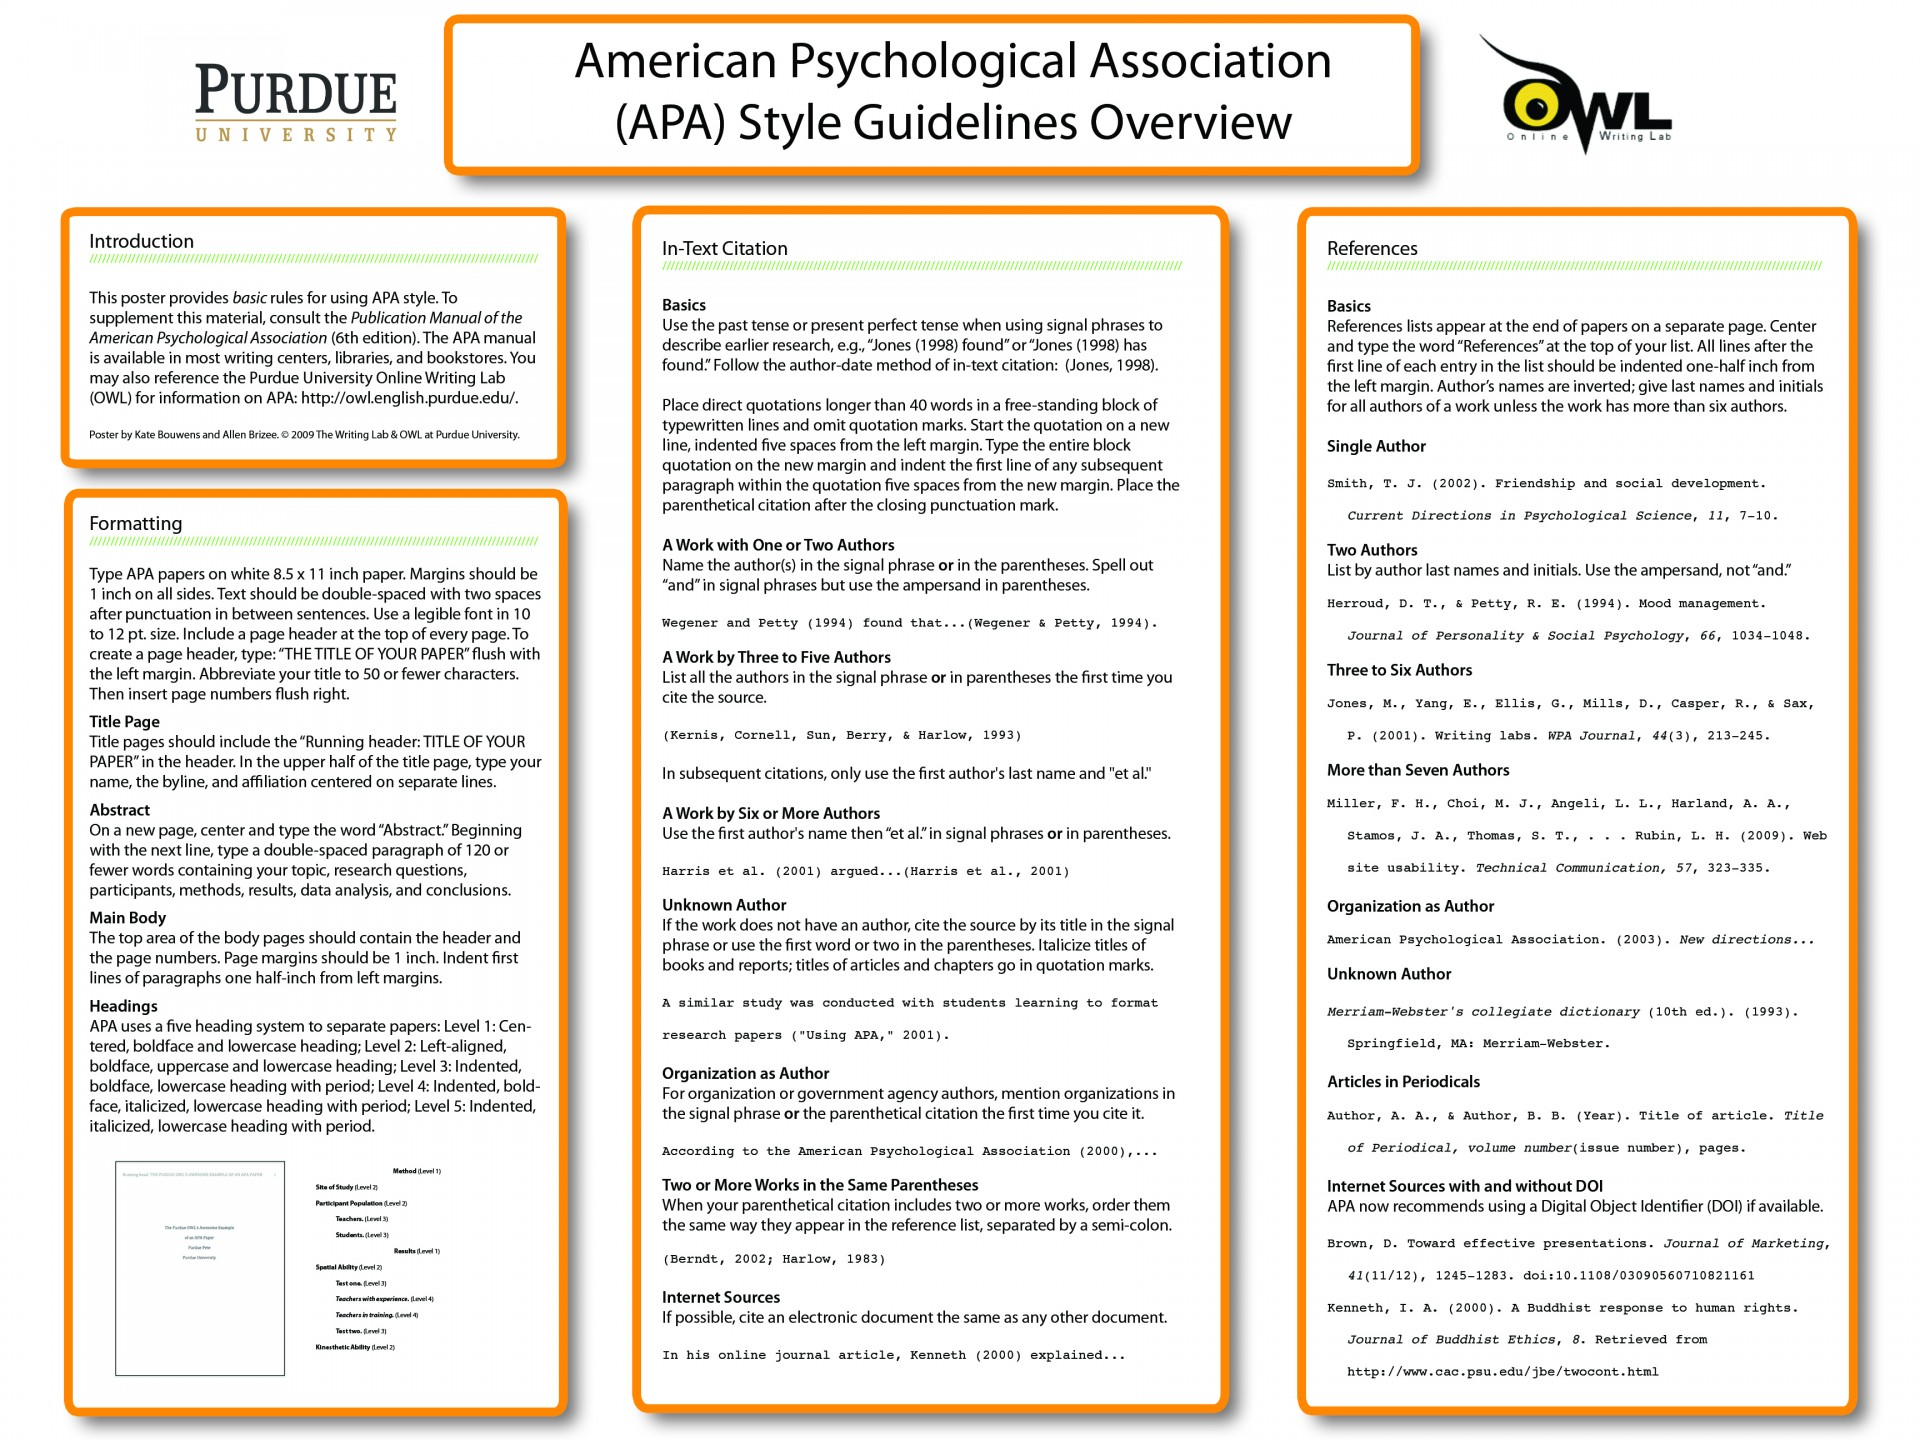 020 Apaposter09 Apa Citation Online Research Best Paper Article 1920